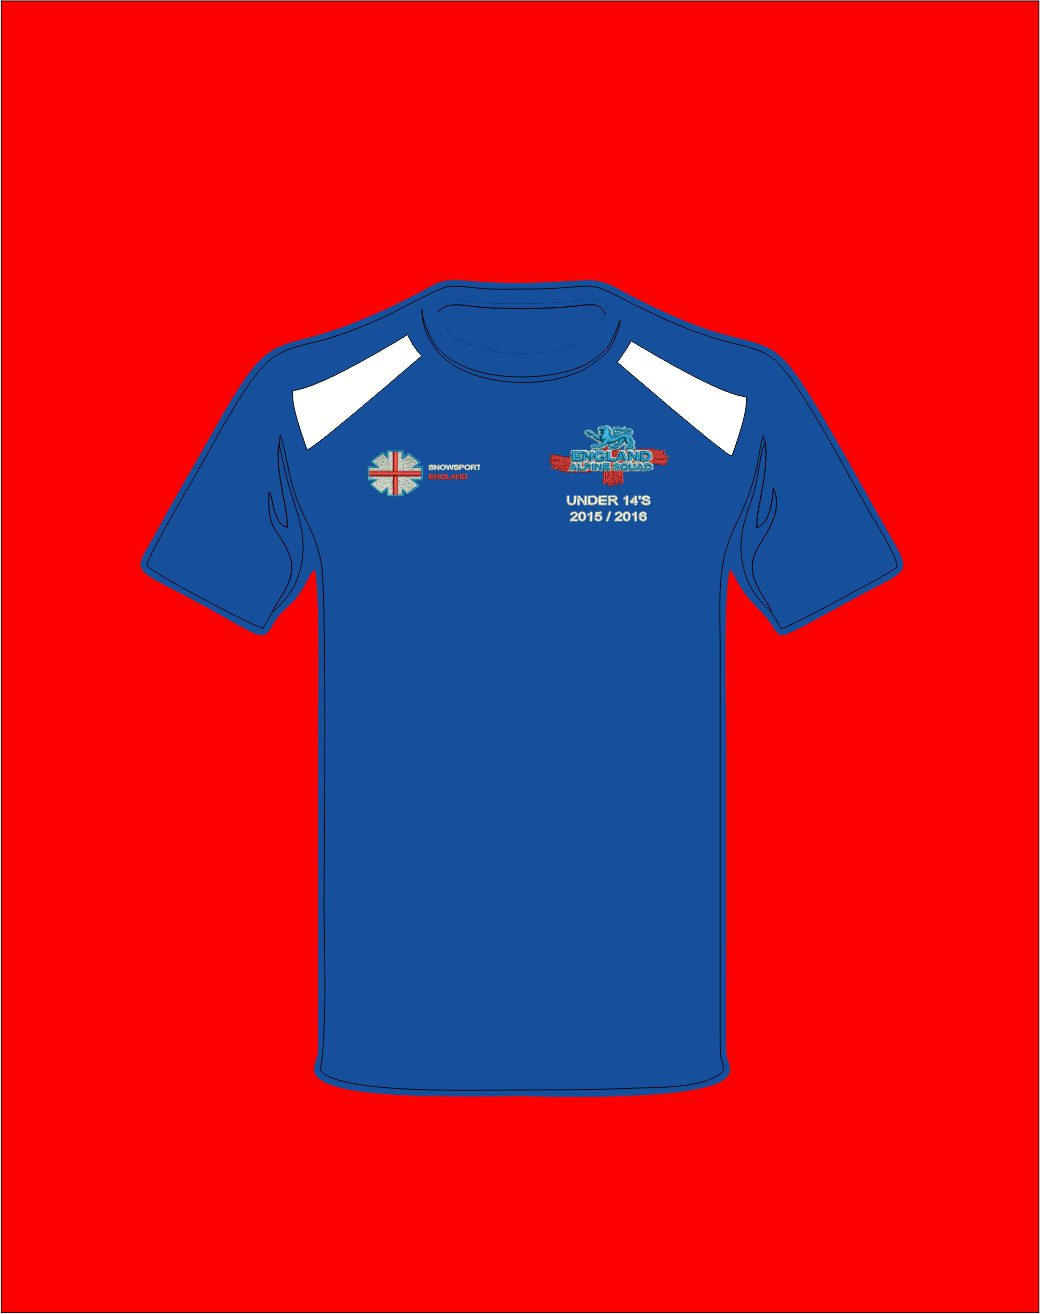 Training Tee (under 14) Sse